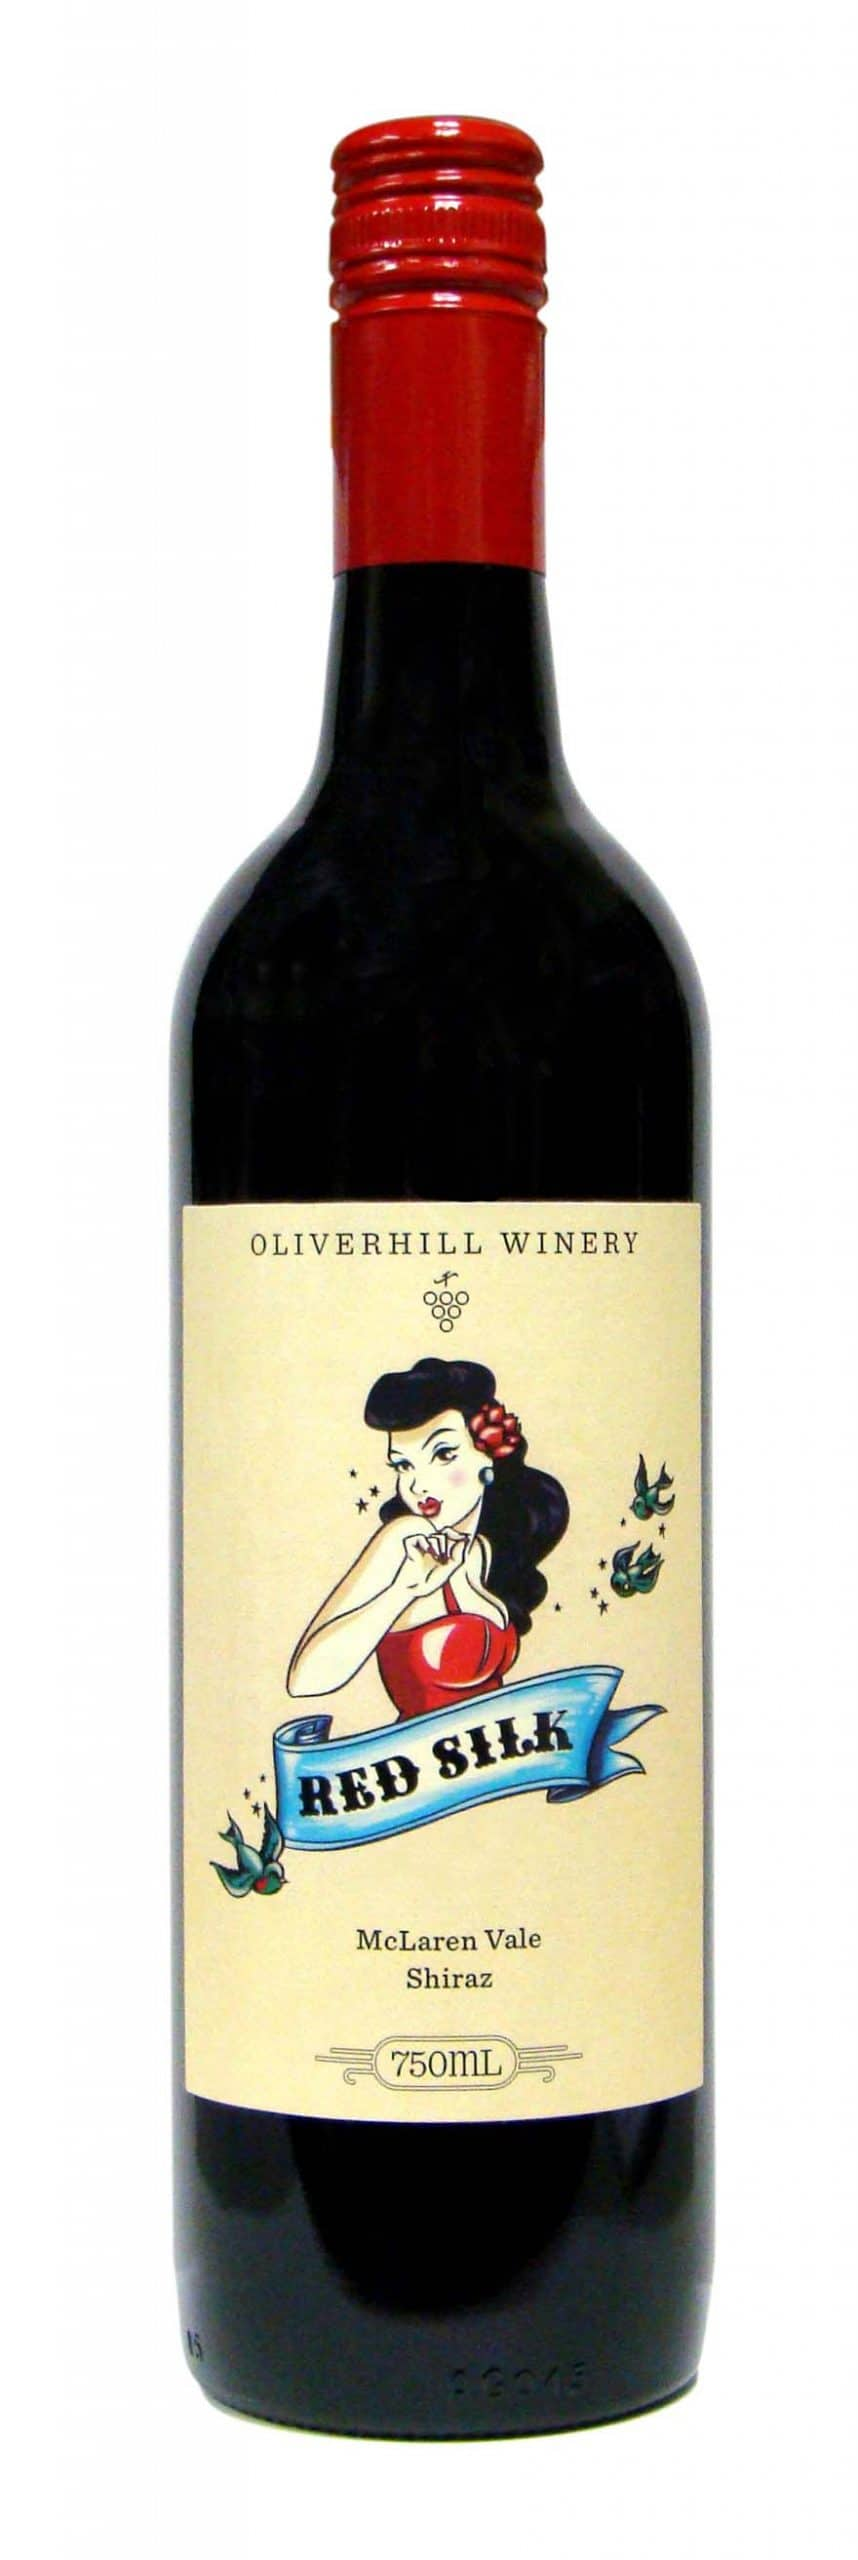 2016 Oliverhill Winery Red Silk Shiraz, McLaren Vale